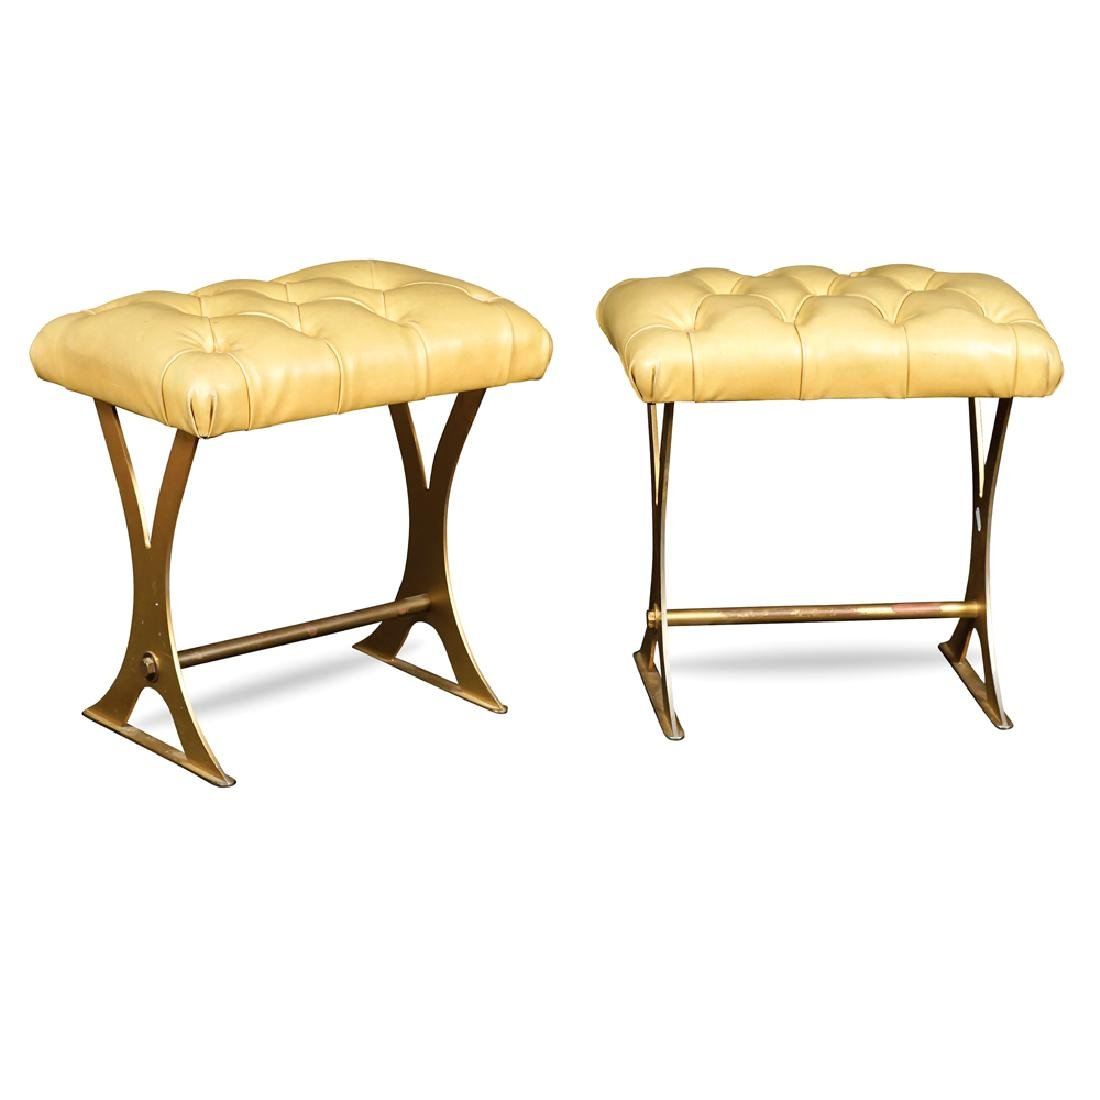 Pair of stools France 20th century 40x43x30 cm.